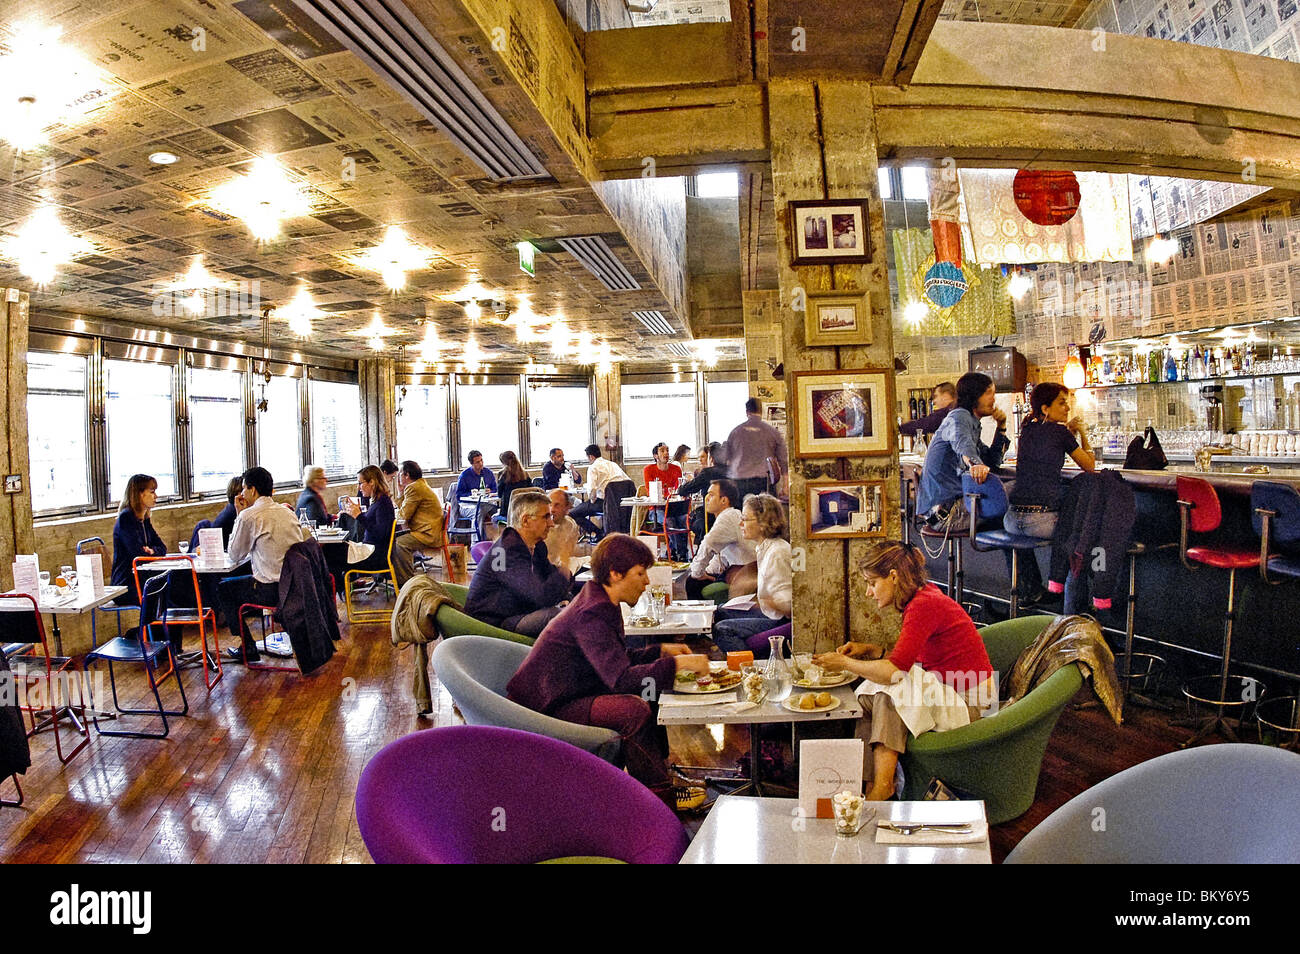 Paris France Adults Eating Lunch In Trendy Paris Bistro Bar Top Of Stock Photo Alamy